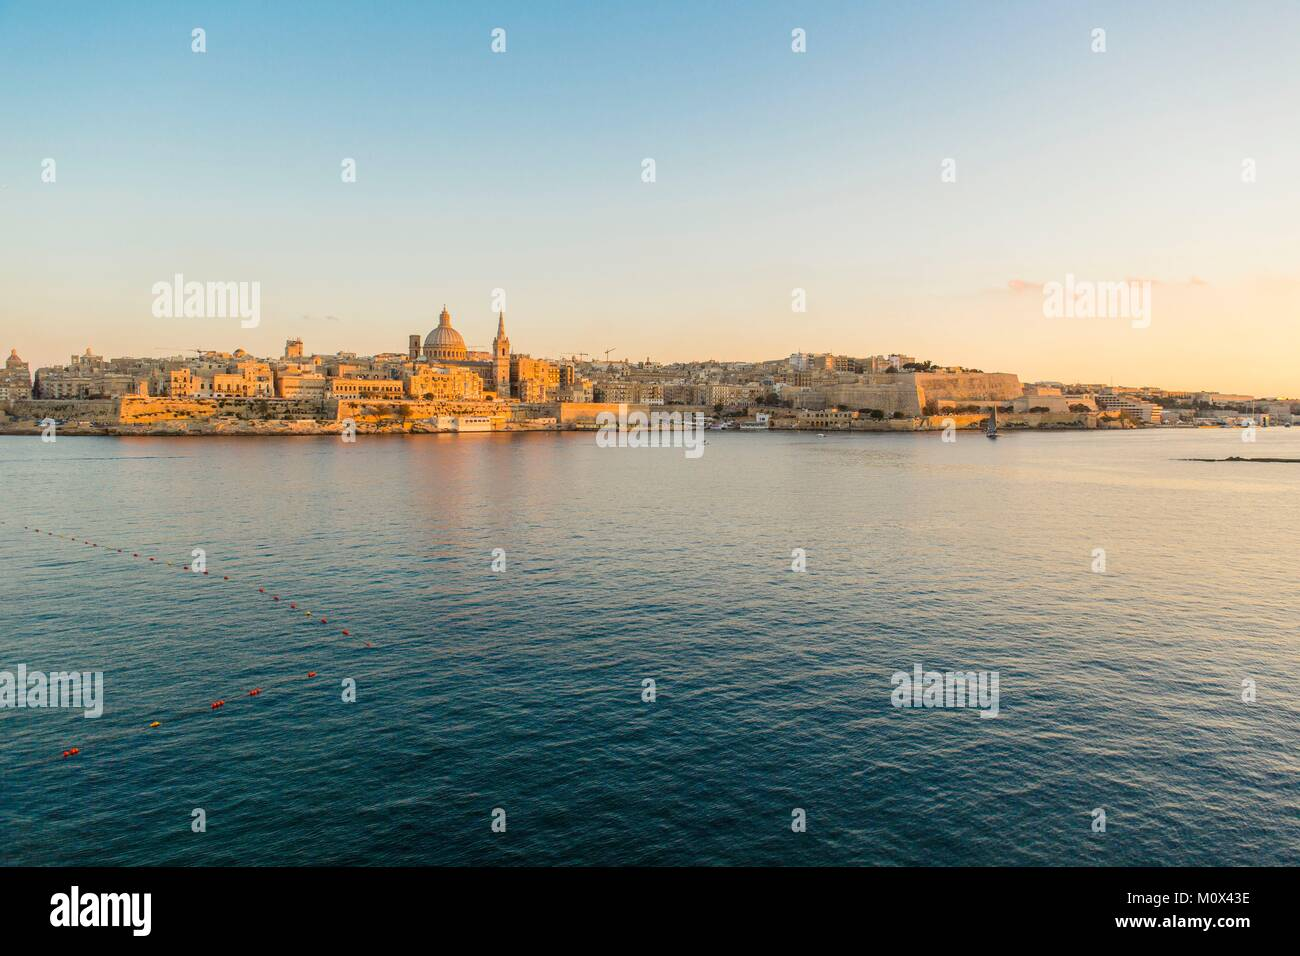 Malta,Valletta,listed as World Heritage by UNESCO,seen from Sliema - Stock Image